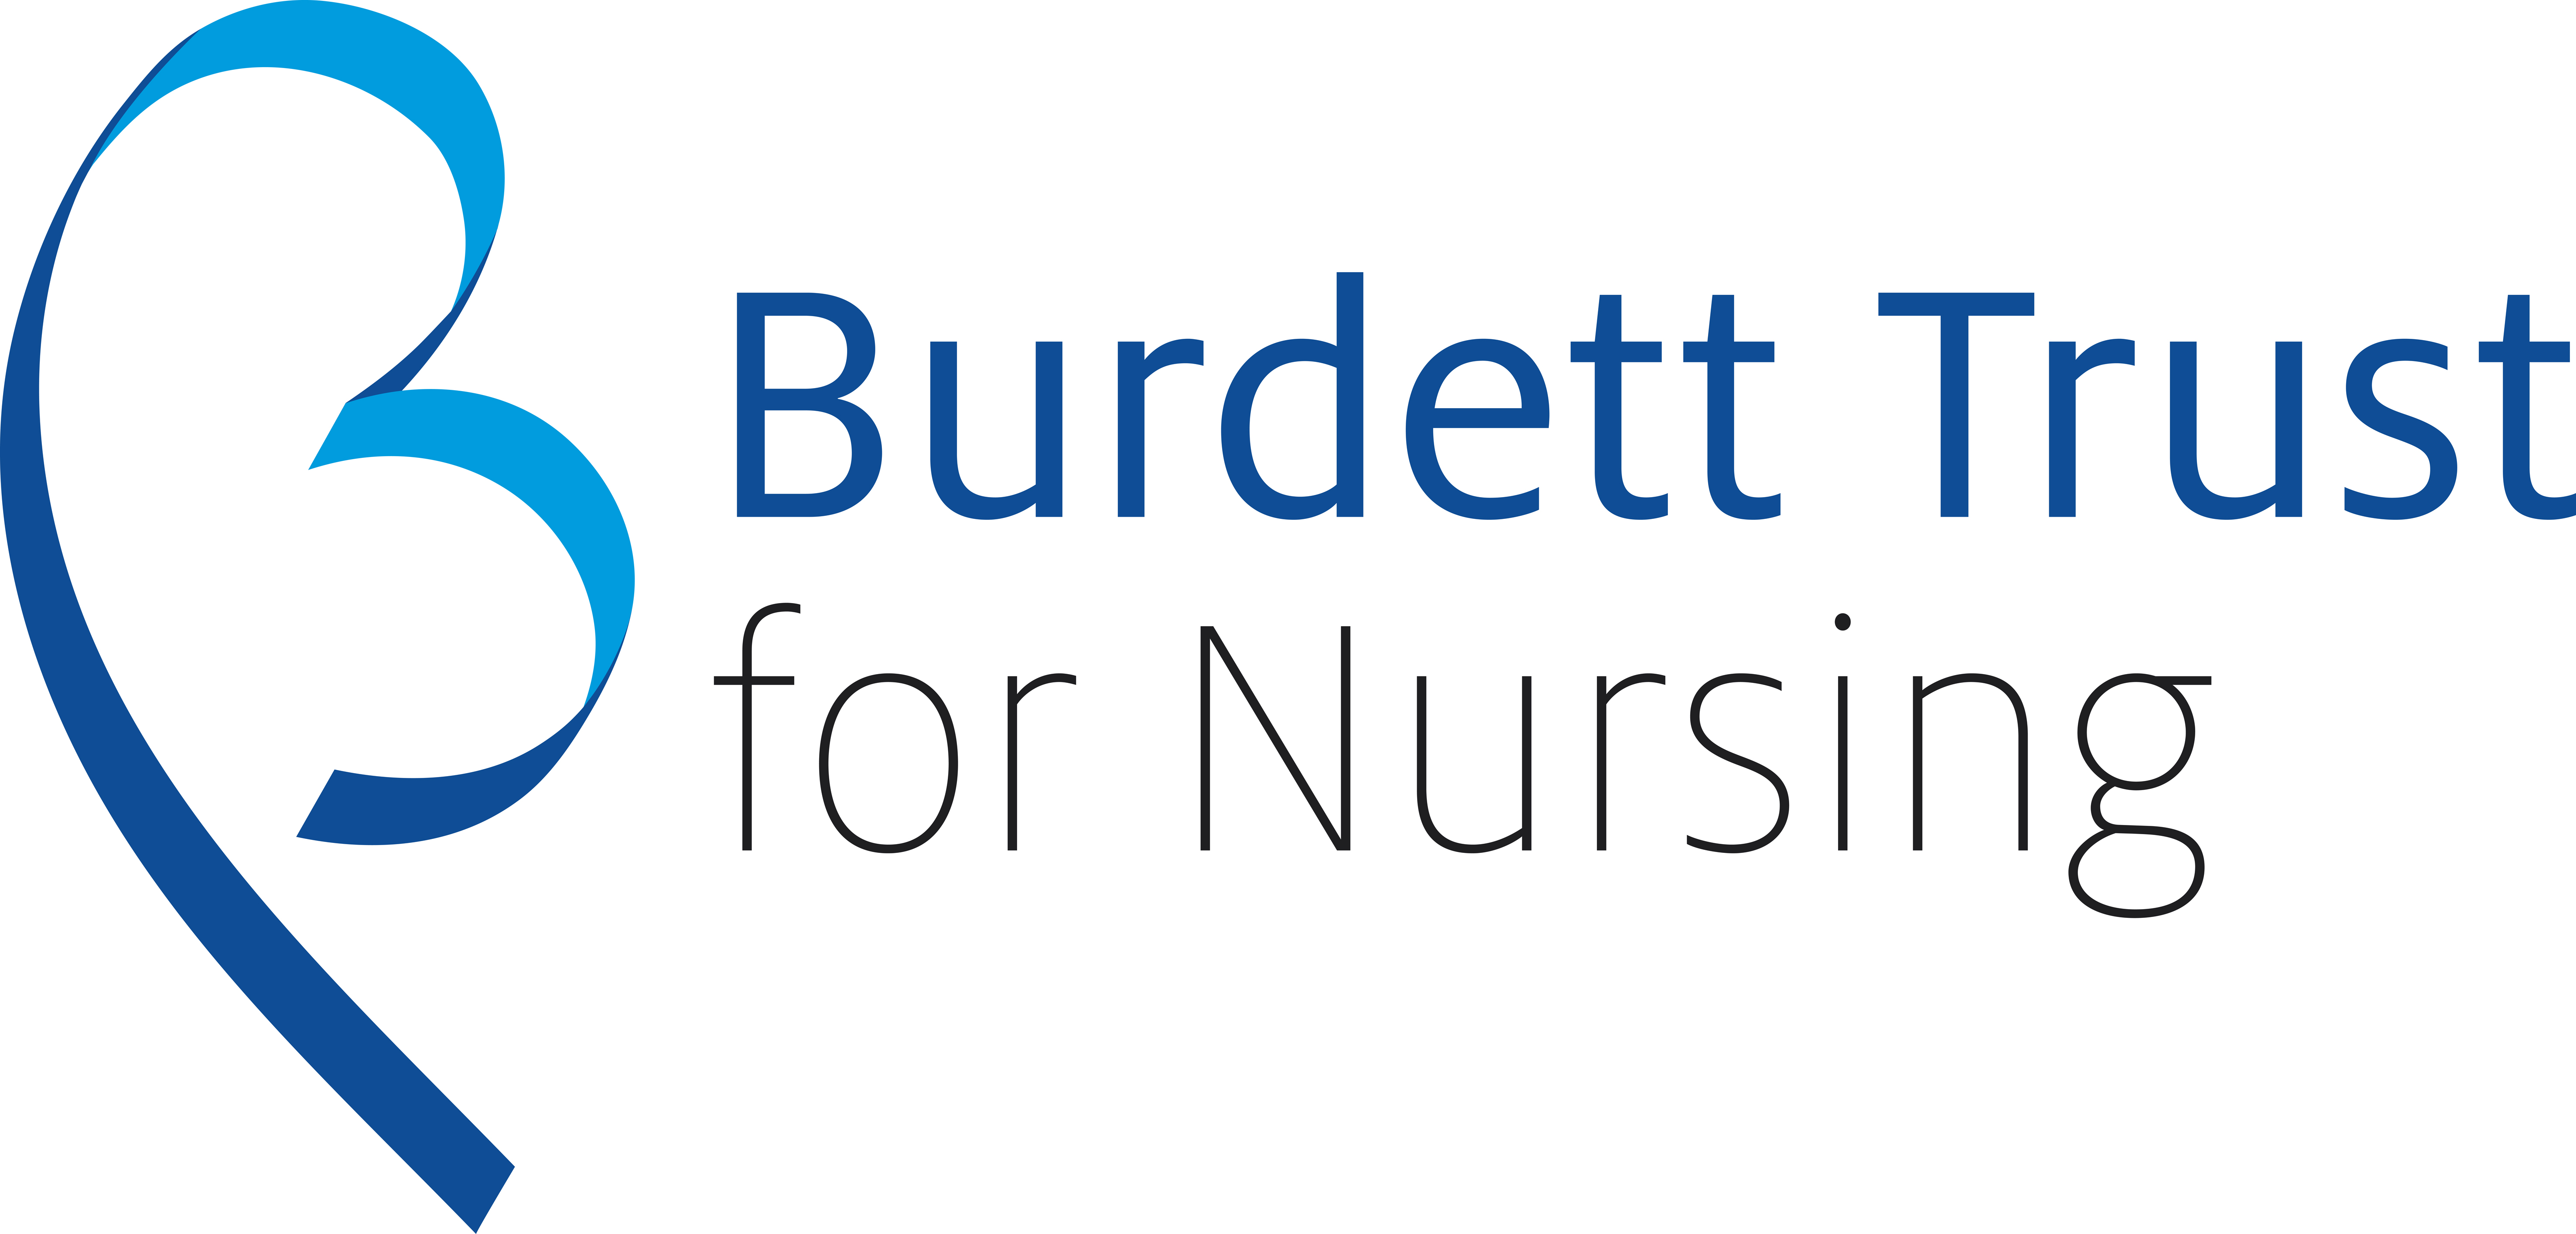 The Burdett Trust for Nursing